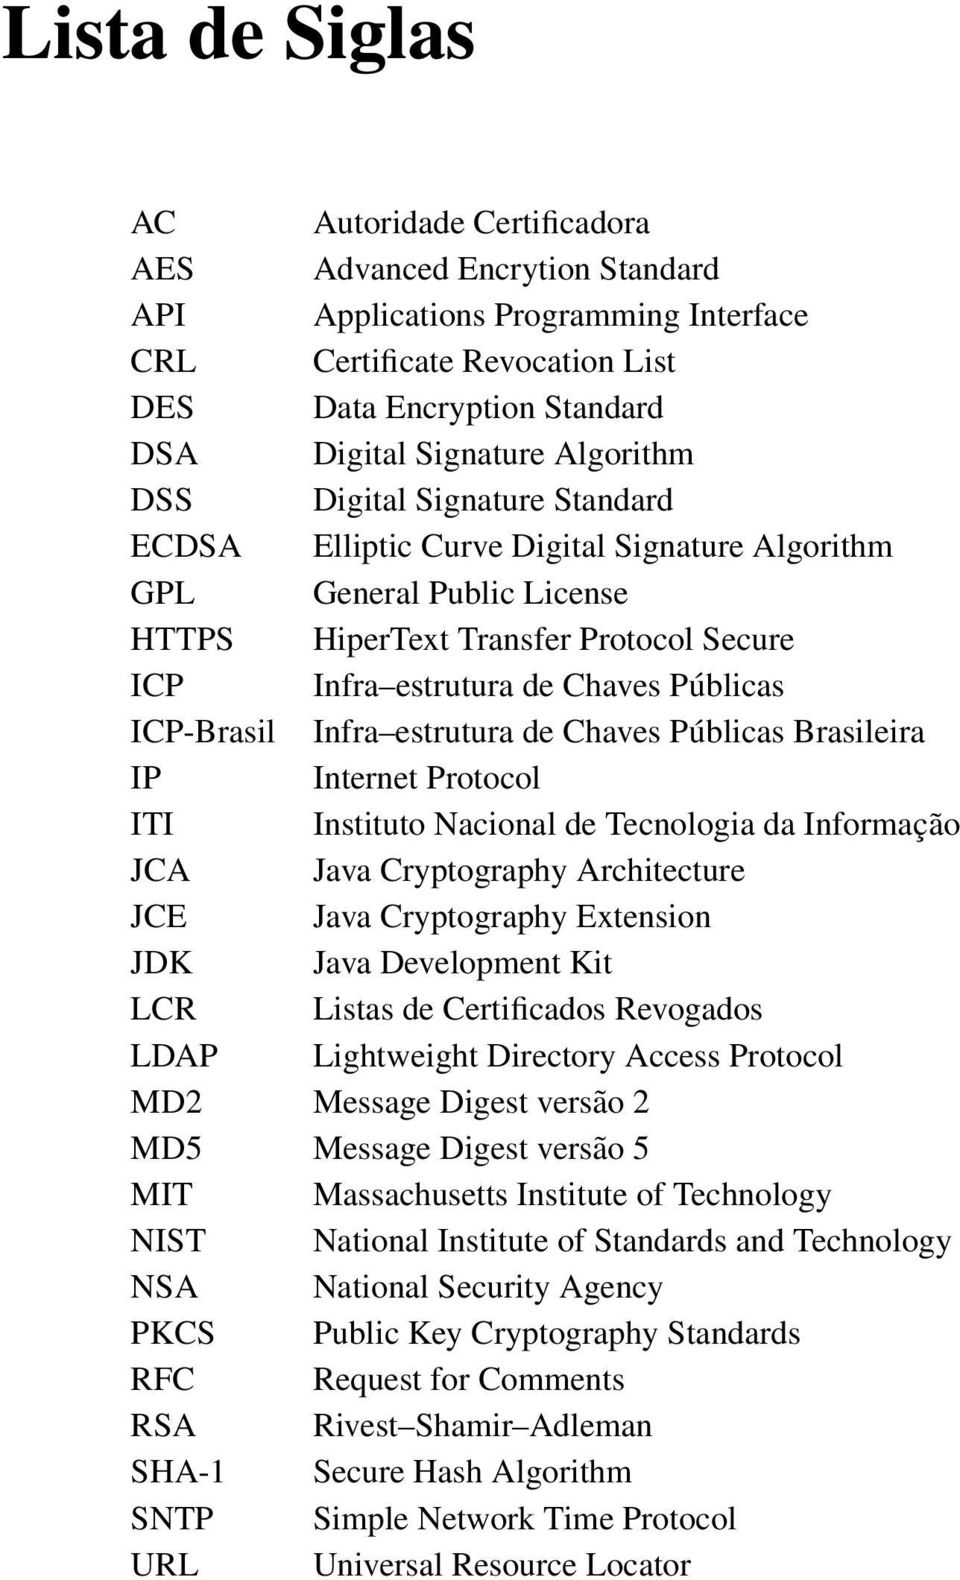 ICP-Brasil Infra estrutura de Chaves Públicas Brasileira IP Internet Protocol ITI Instituto Nacional de Tecnologia da Informação JCA Java Cryptography Architecture JCE Java Cryptography Extension JDK